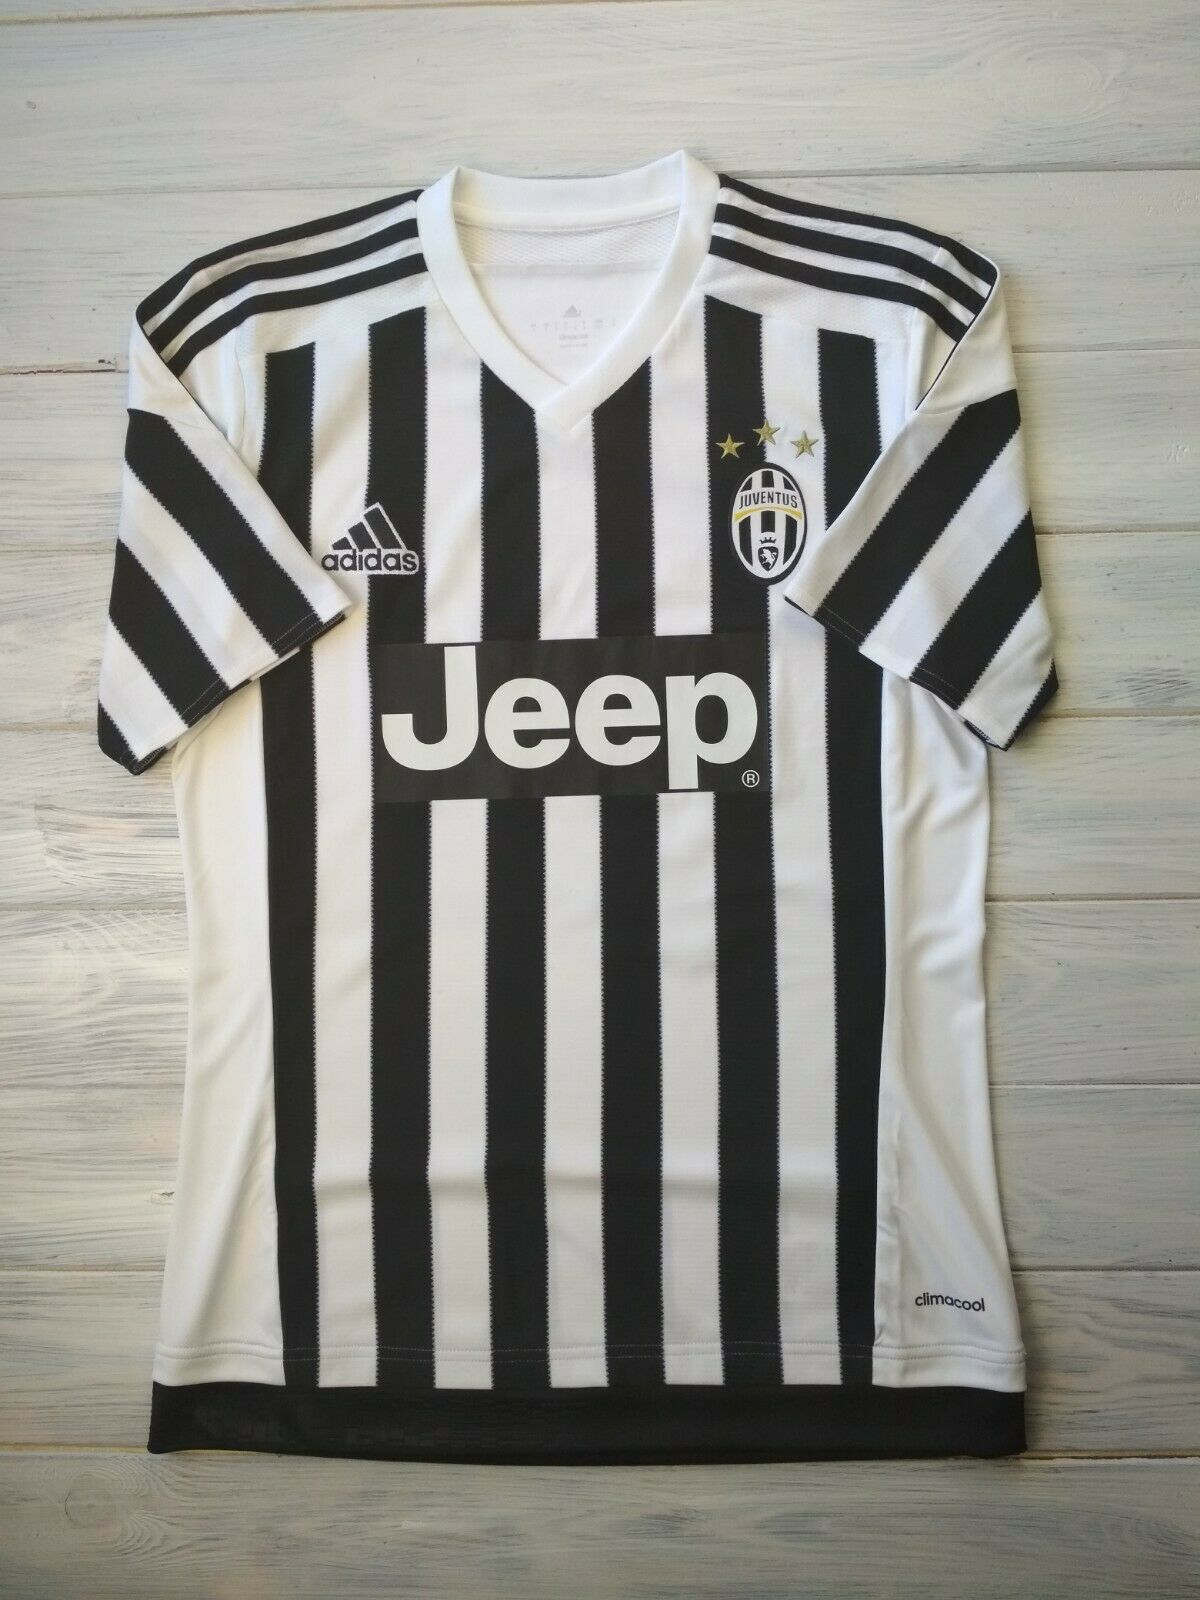 Juventus jersey small 2015 2016 home shirt AA0336 soccer football Adidas